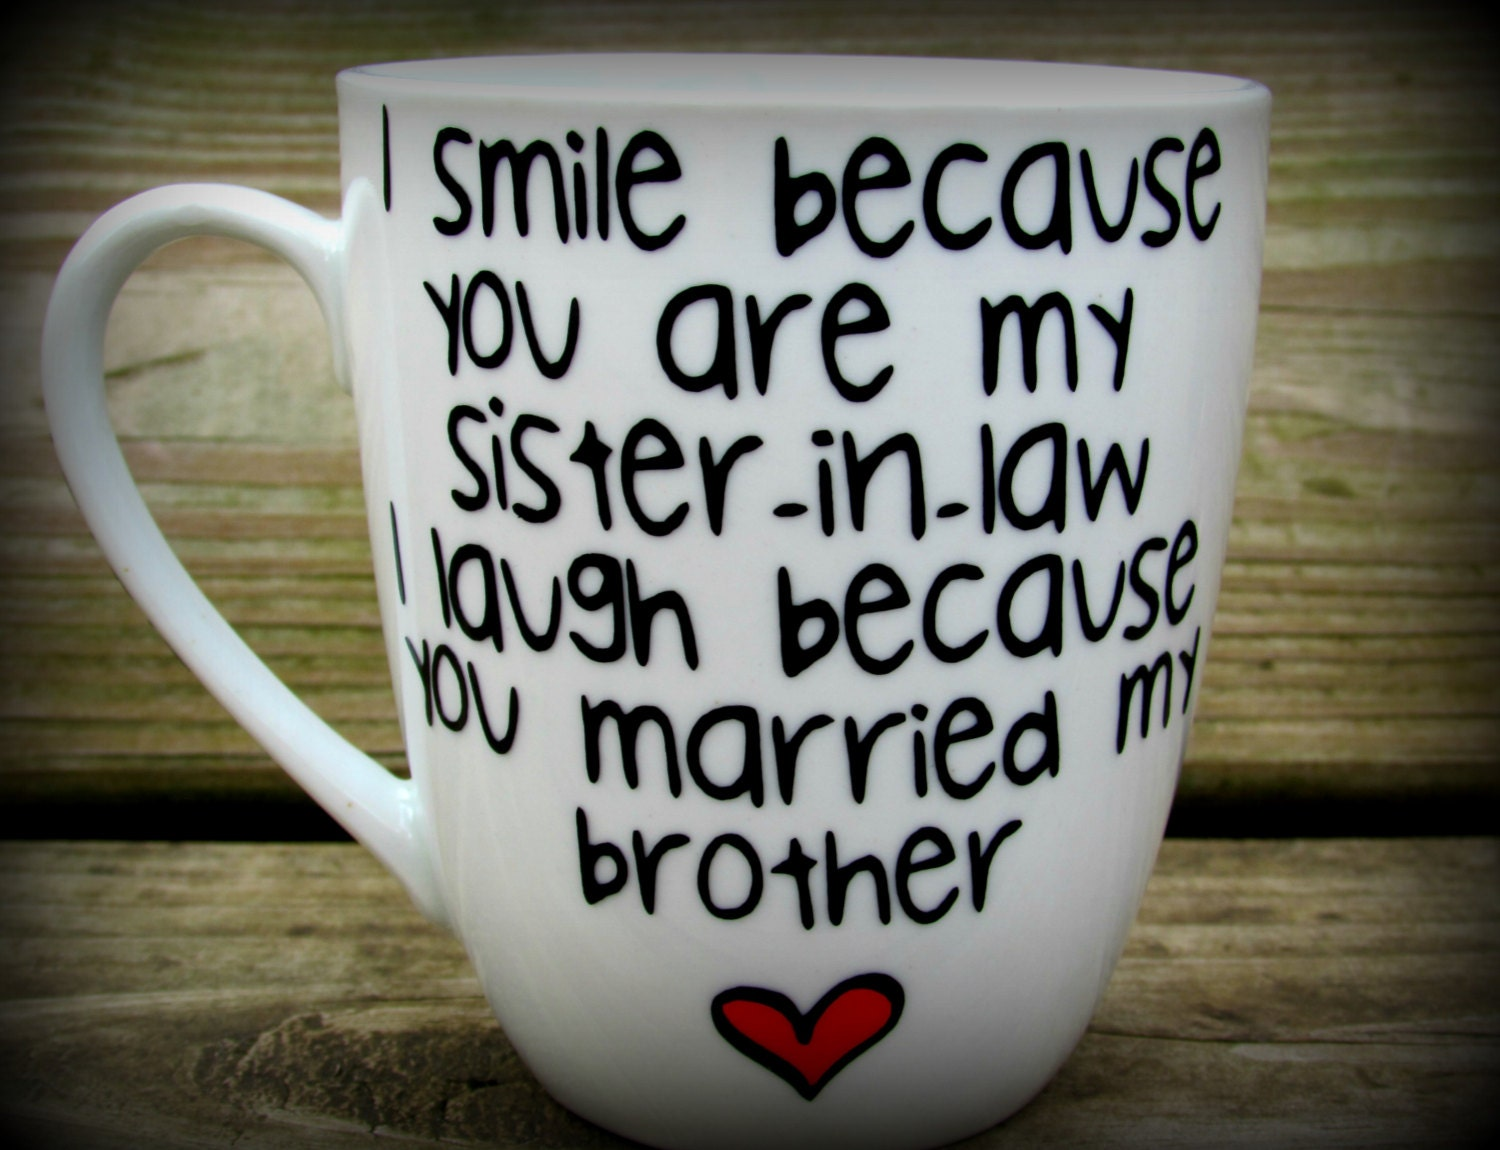 Wedding Anniversary Gift For Brother And Sister In Law : Sister in law Sister in law gift sister in law mug sister